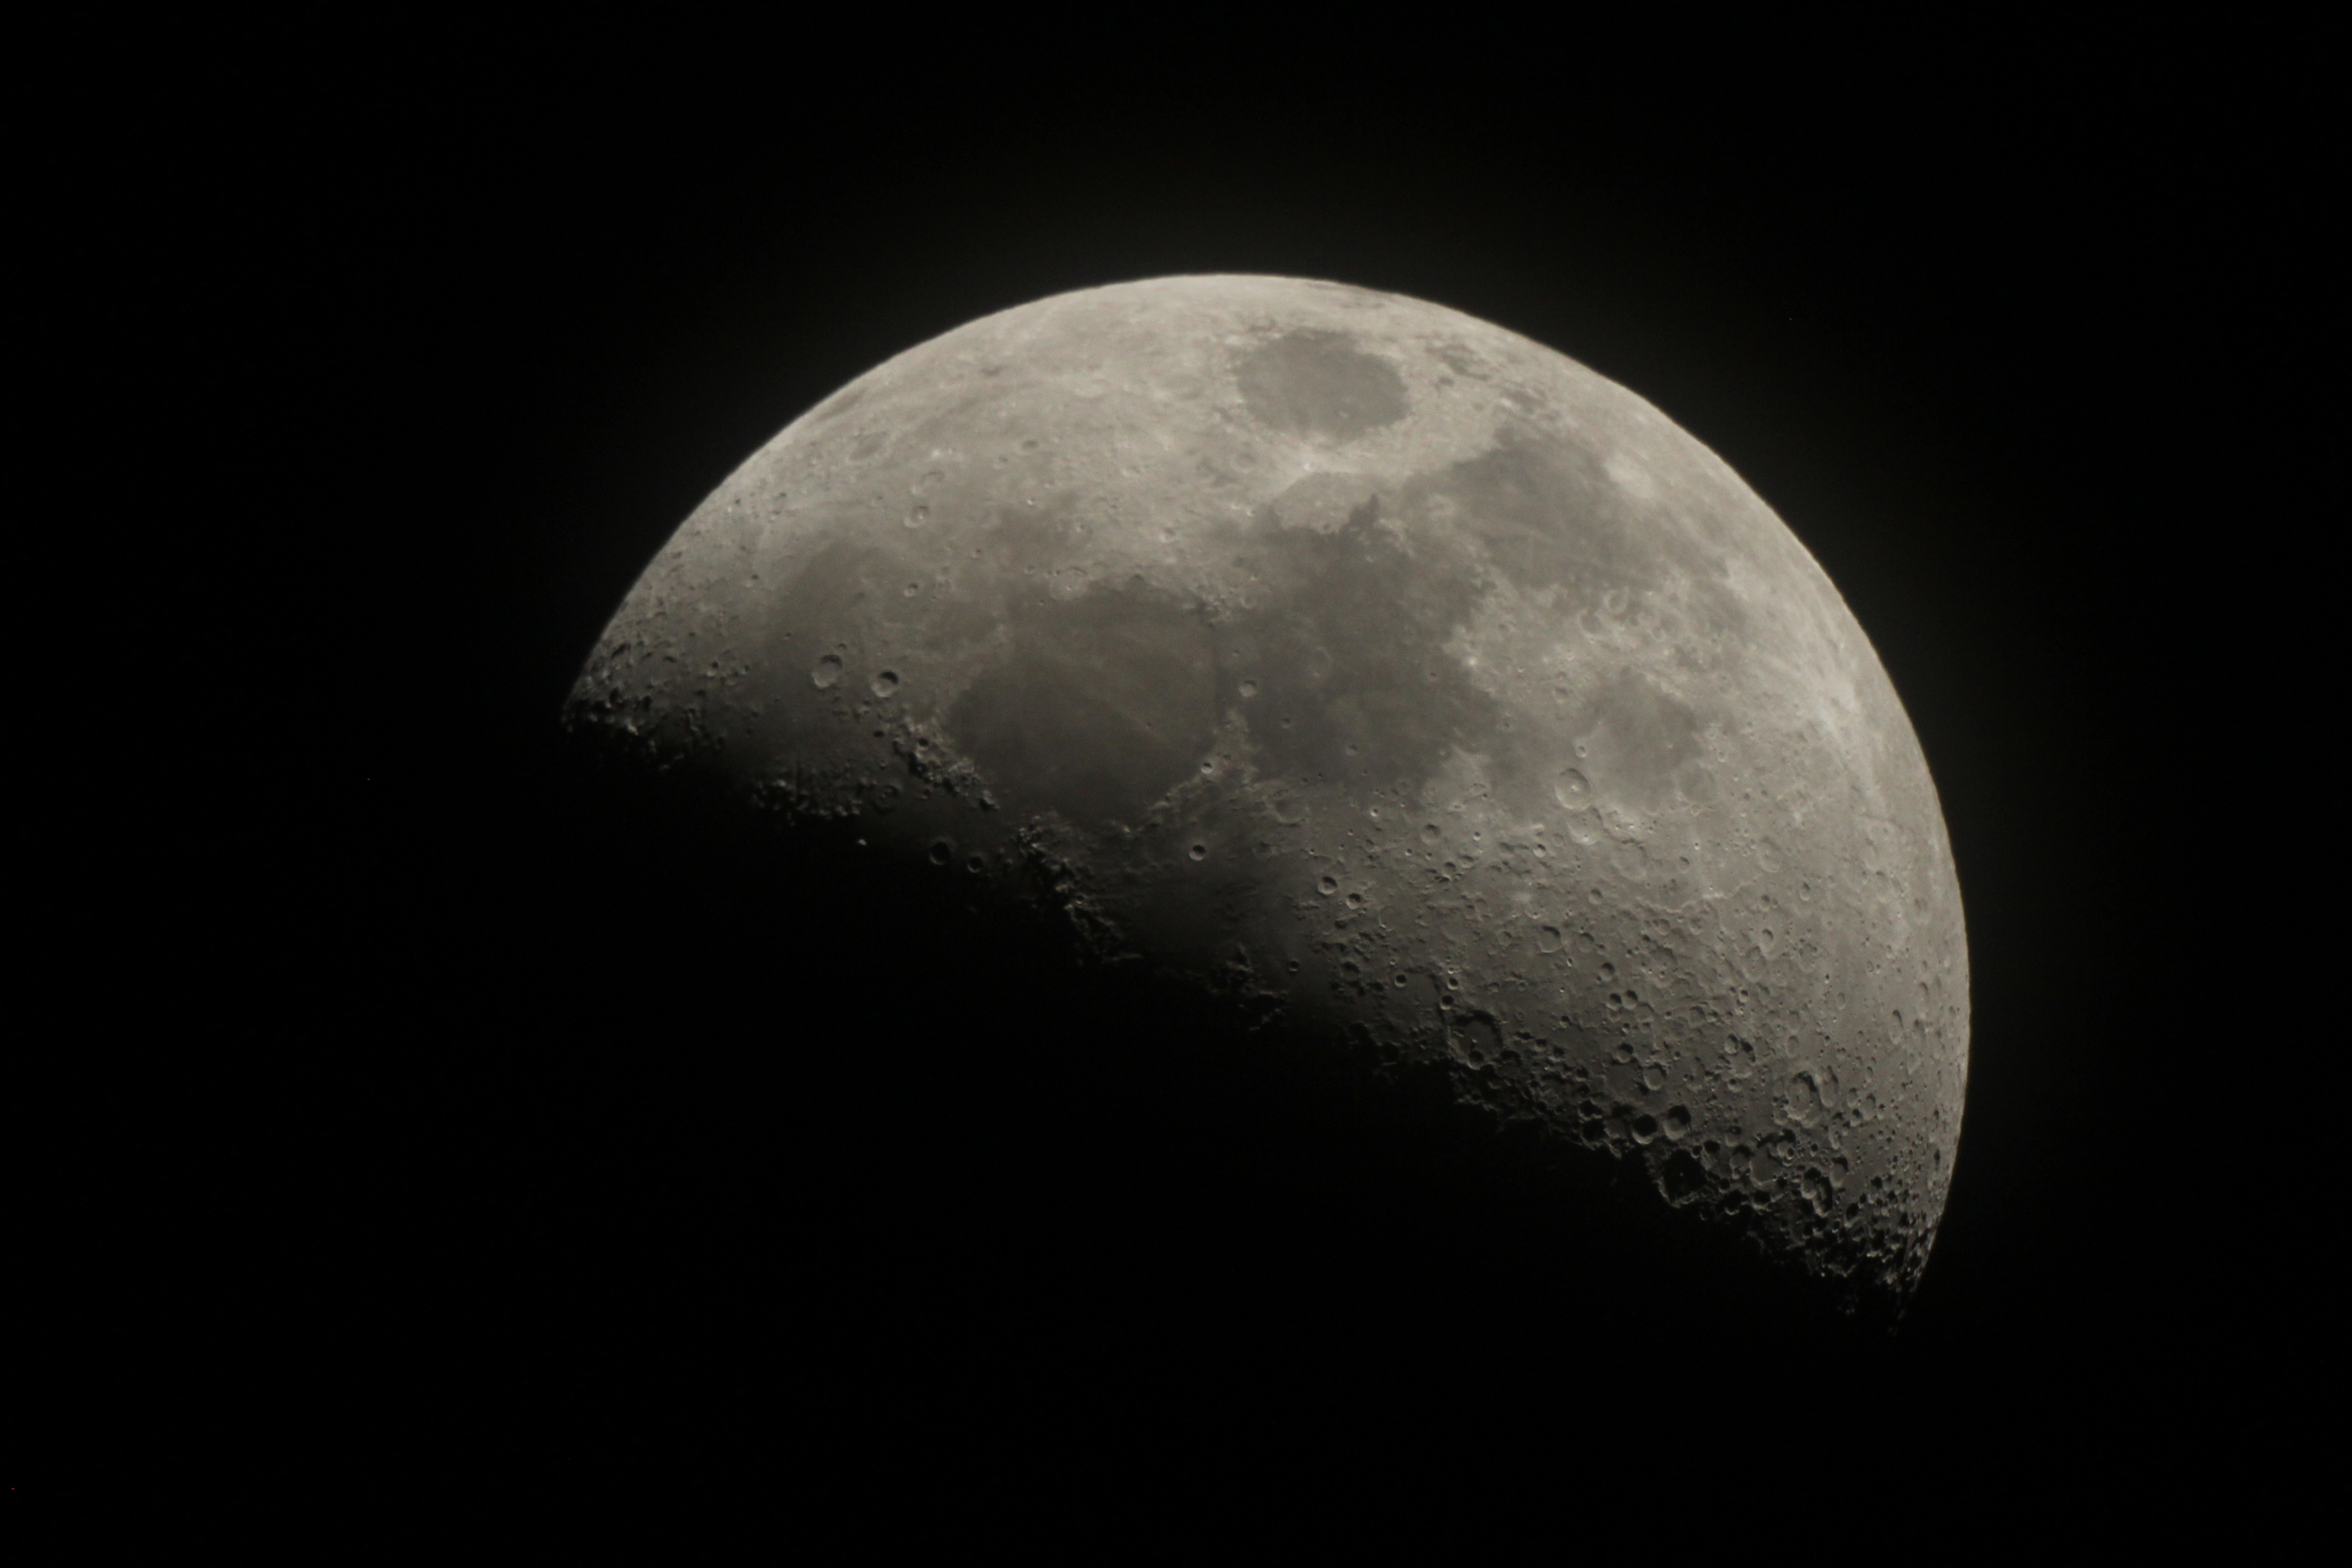 The Moon as seen from Riverwood on May 6, 2014